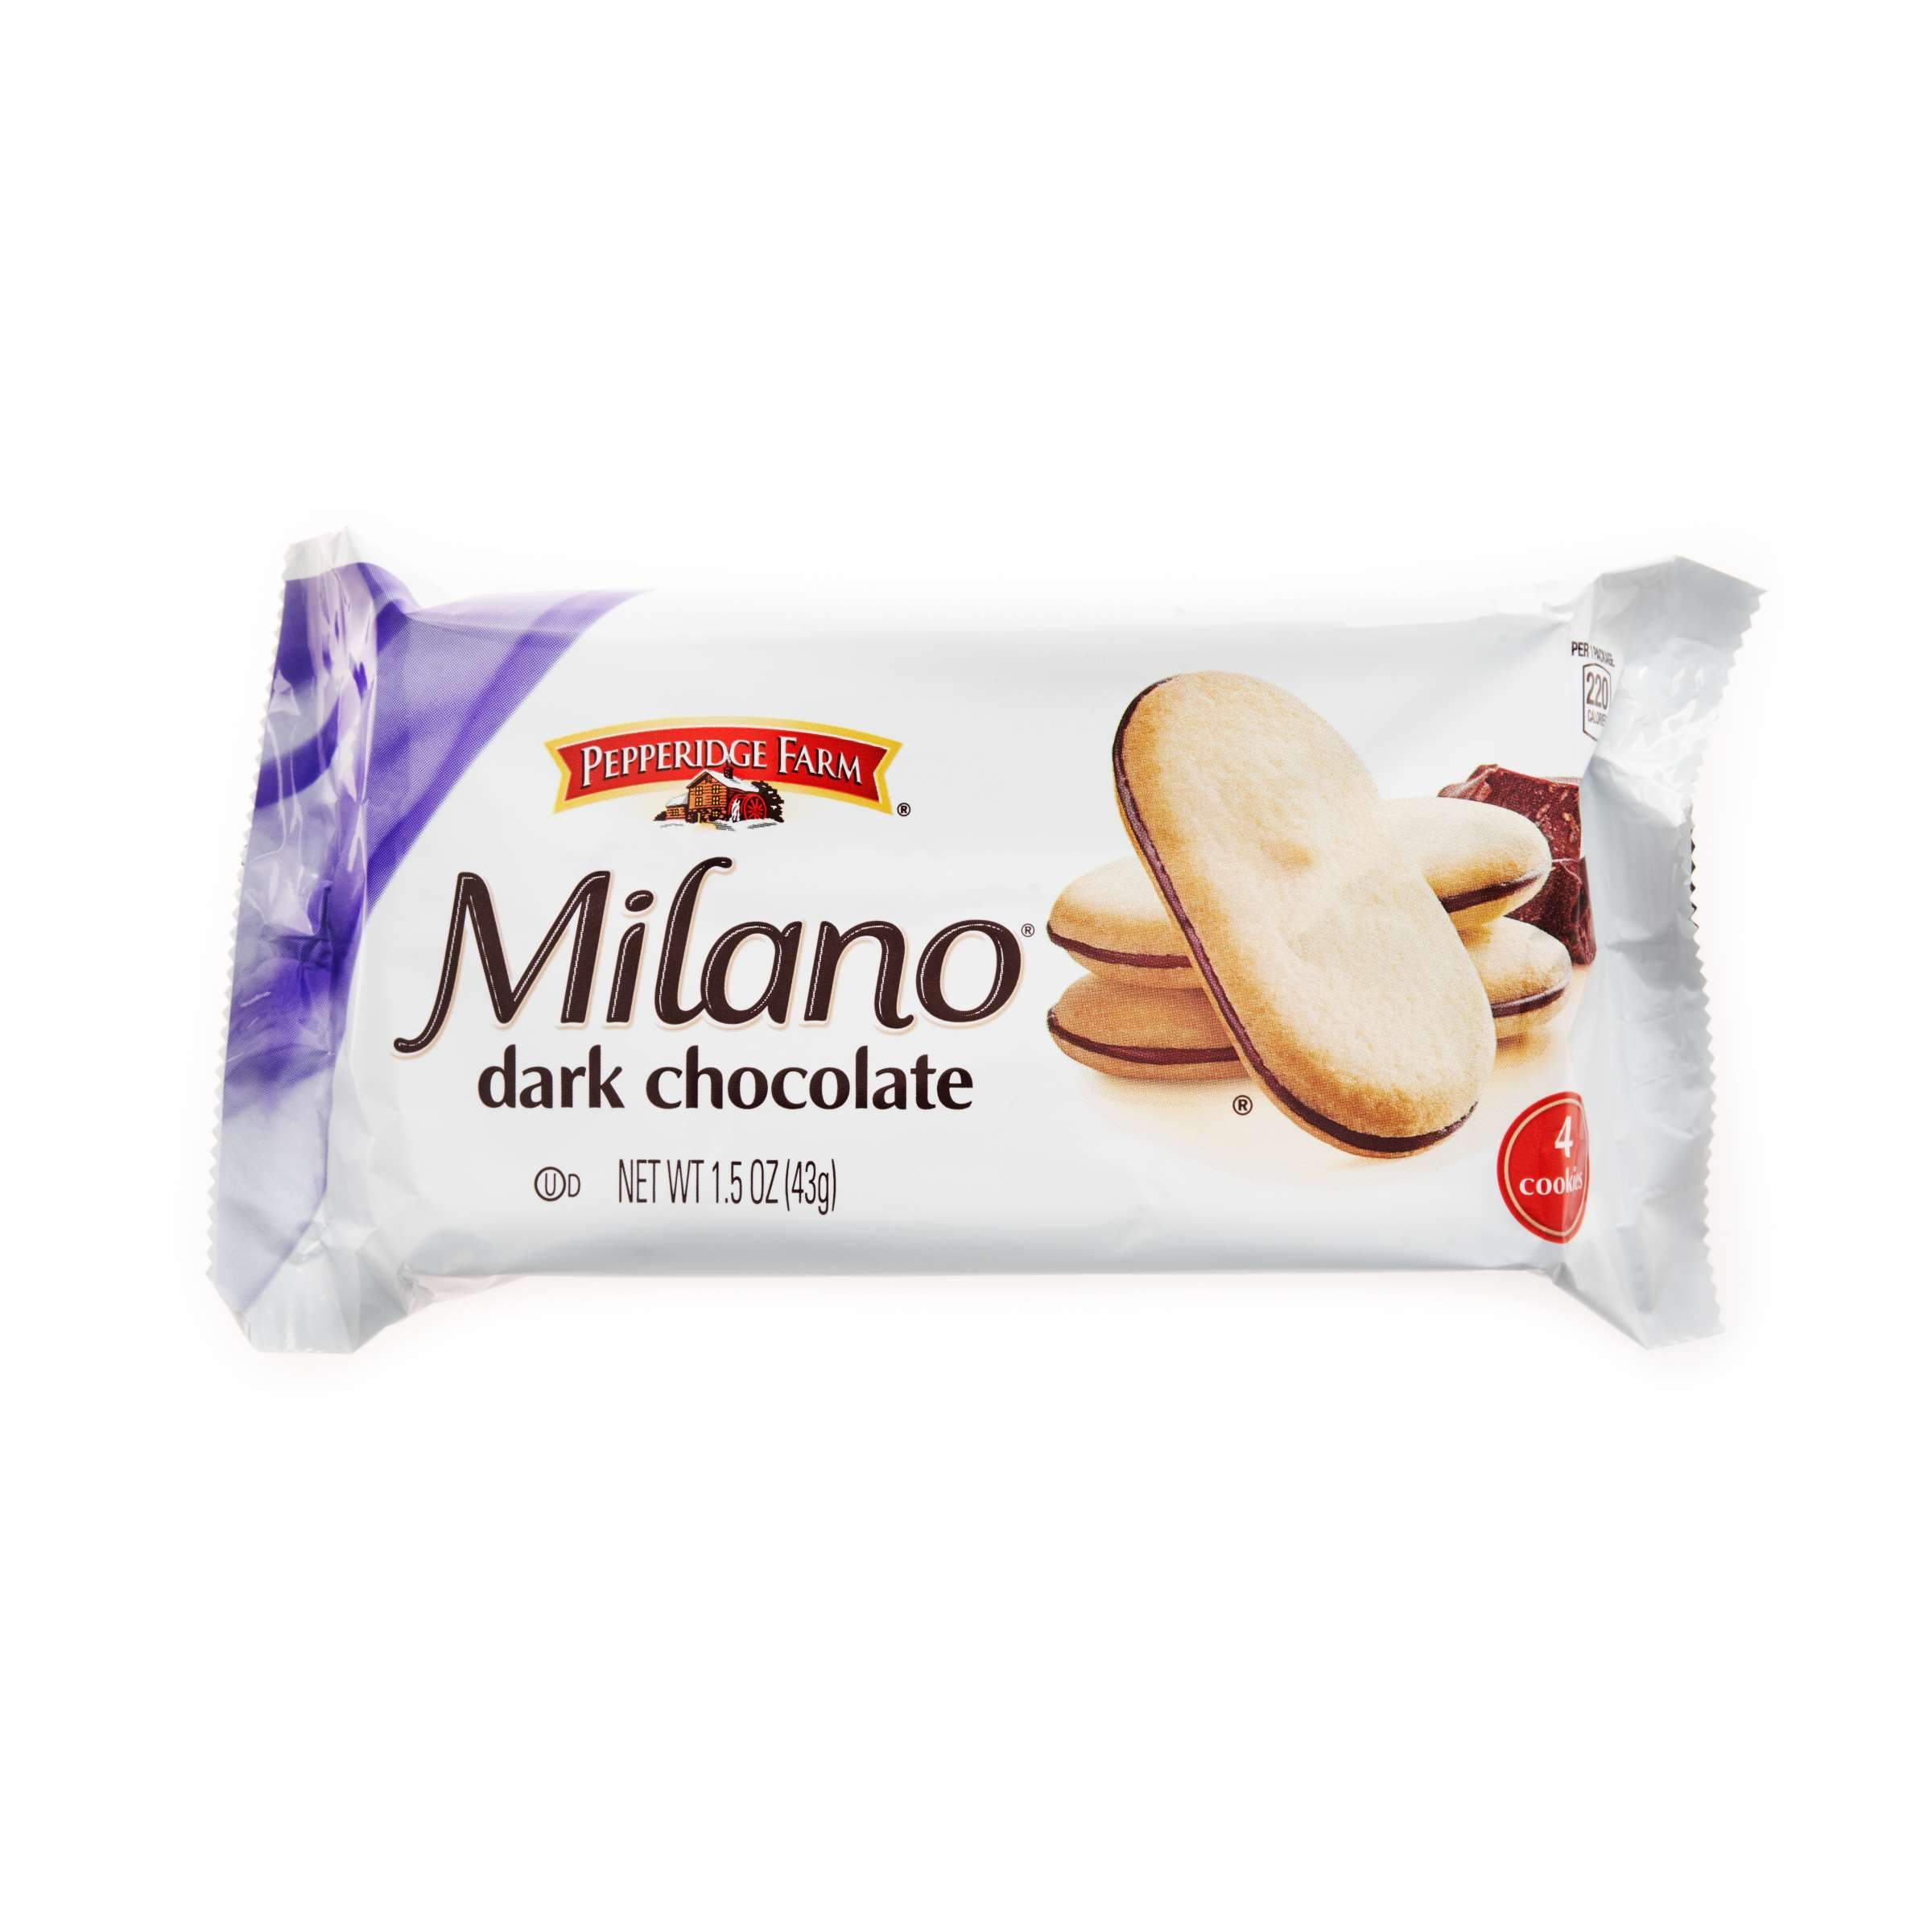 Milano Dark Chocolate Cookies Pepperidge Farms Dark Chocolate 4 Cookies-1.5 Oz